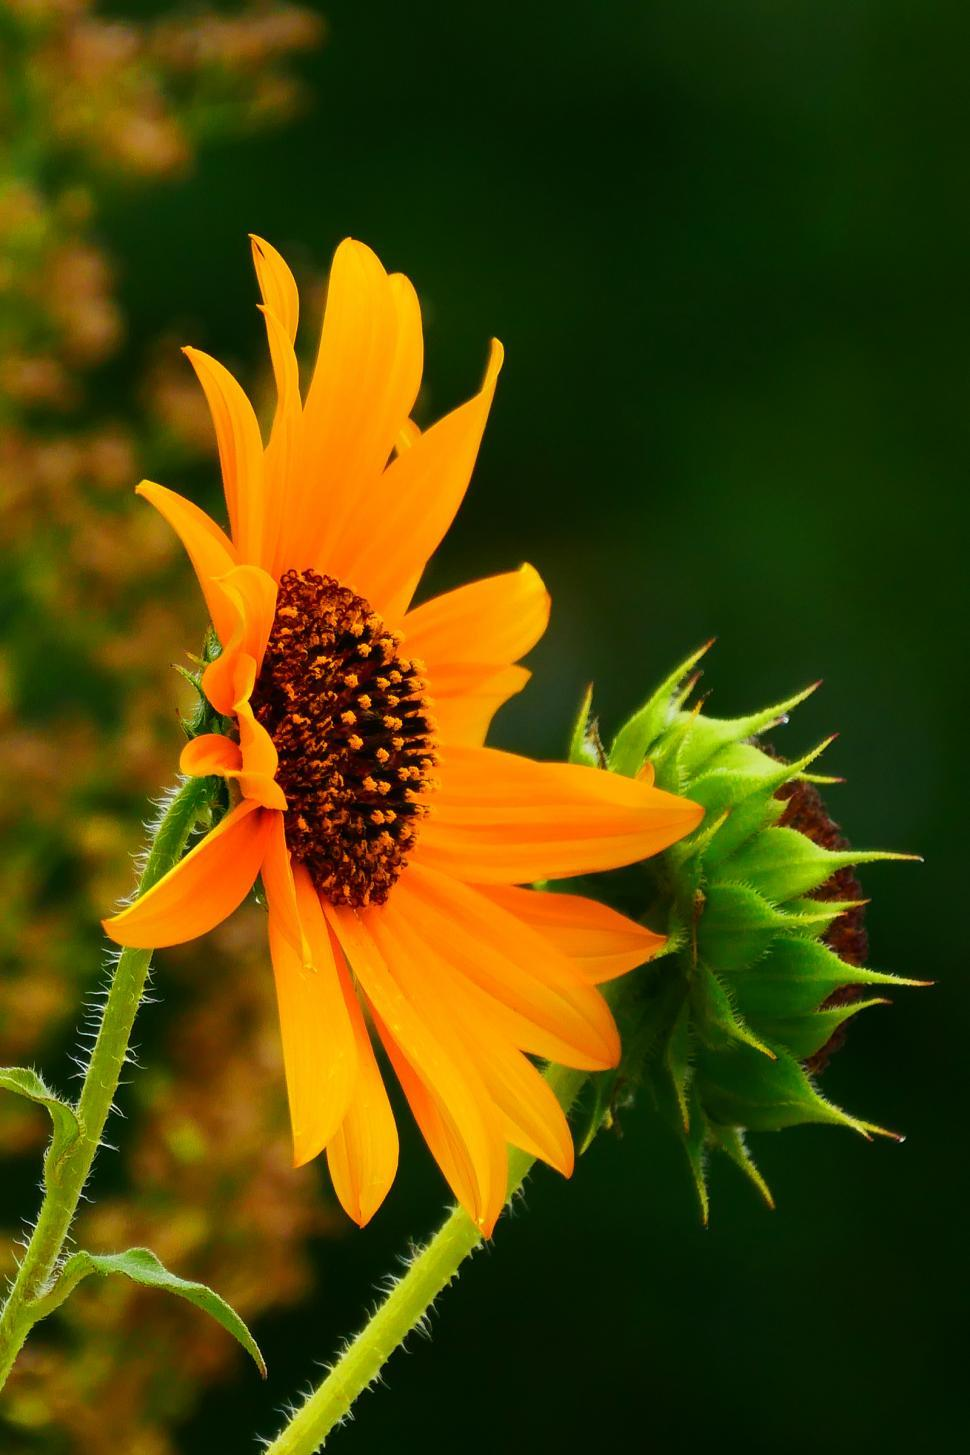 Download Free Stock HD Photo of Yellow Sunflower Flower Full Bloom Online